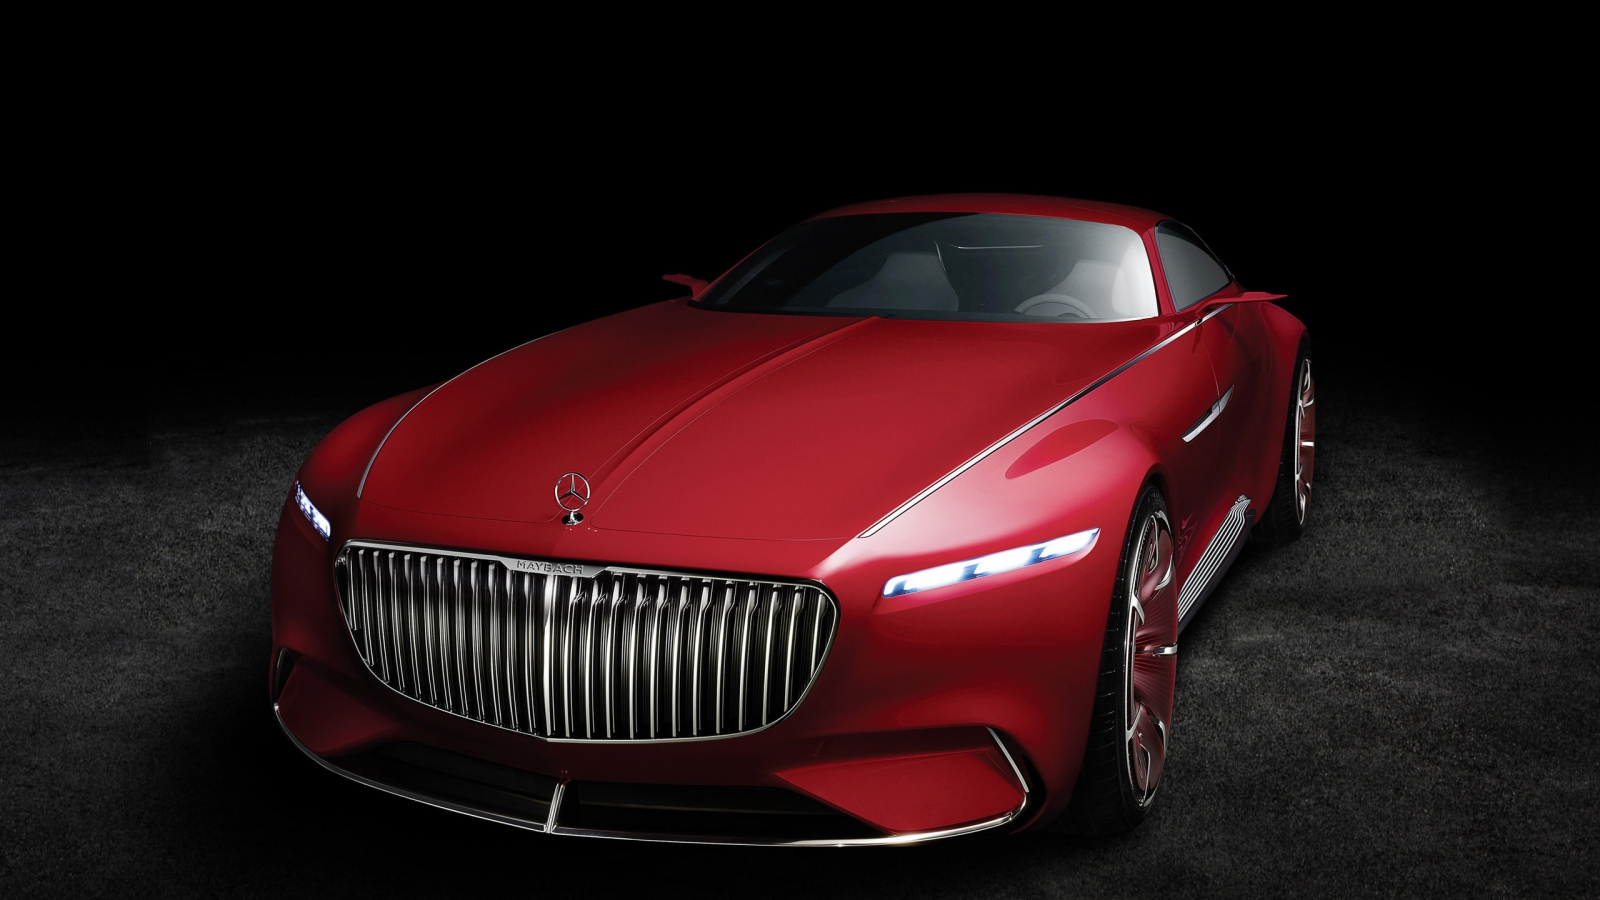 2016 Vision Mercedes Maybach 6 for 1600 x 900 HDTV resolution